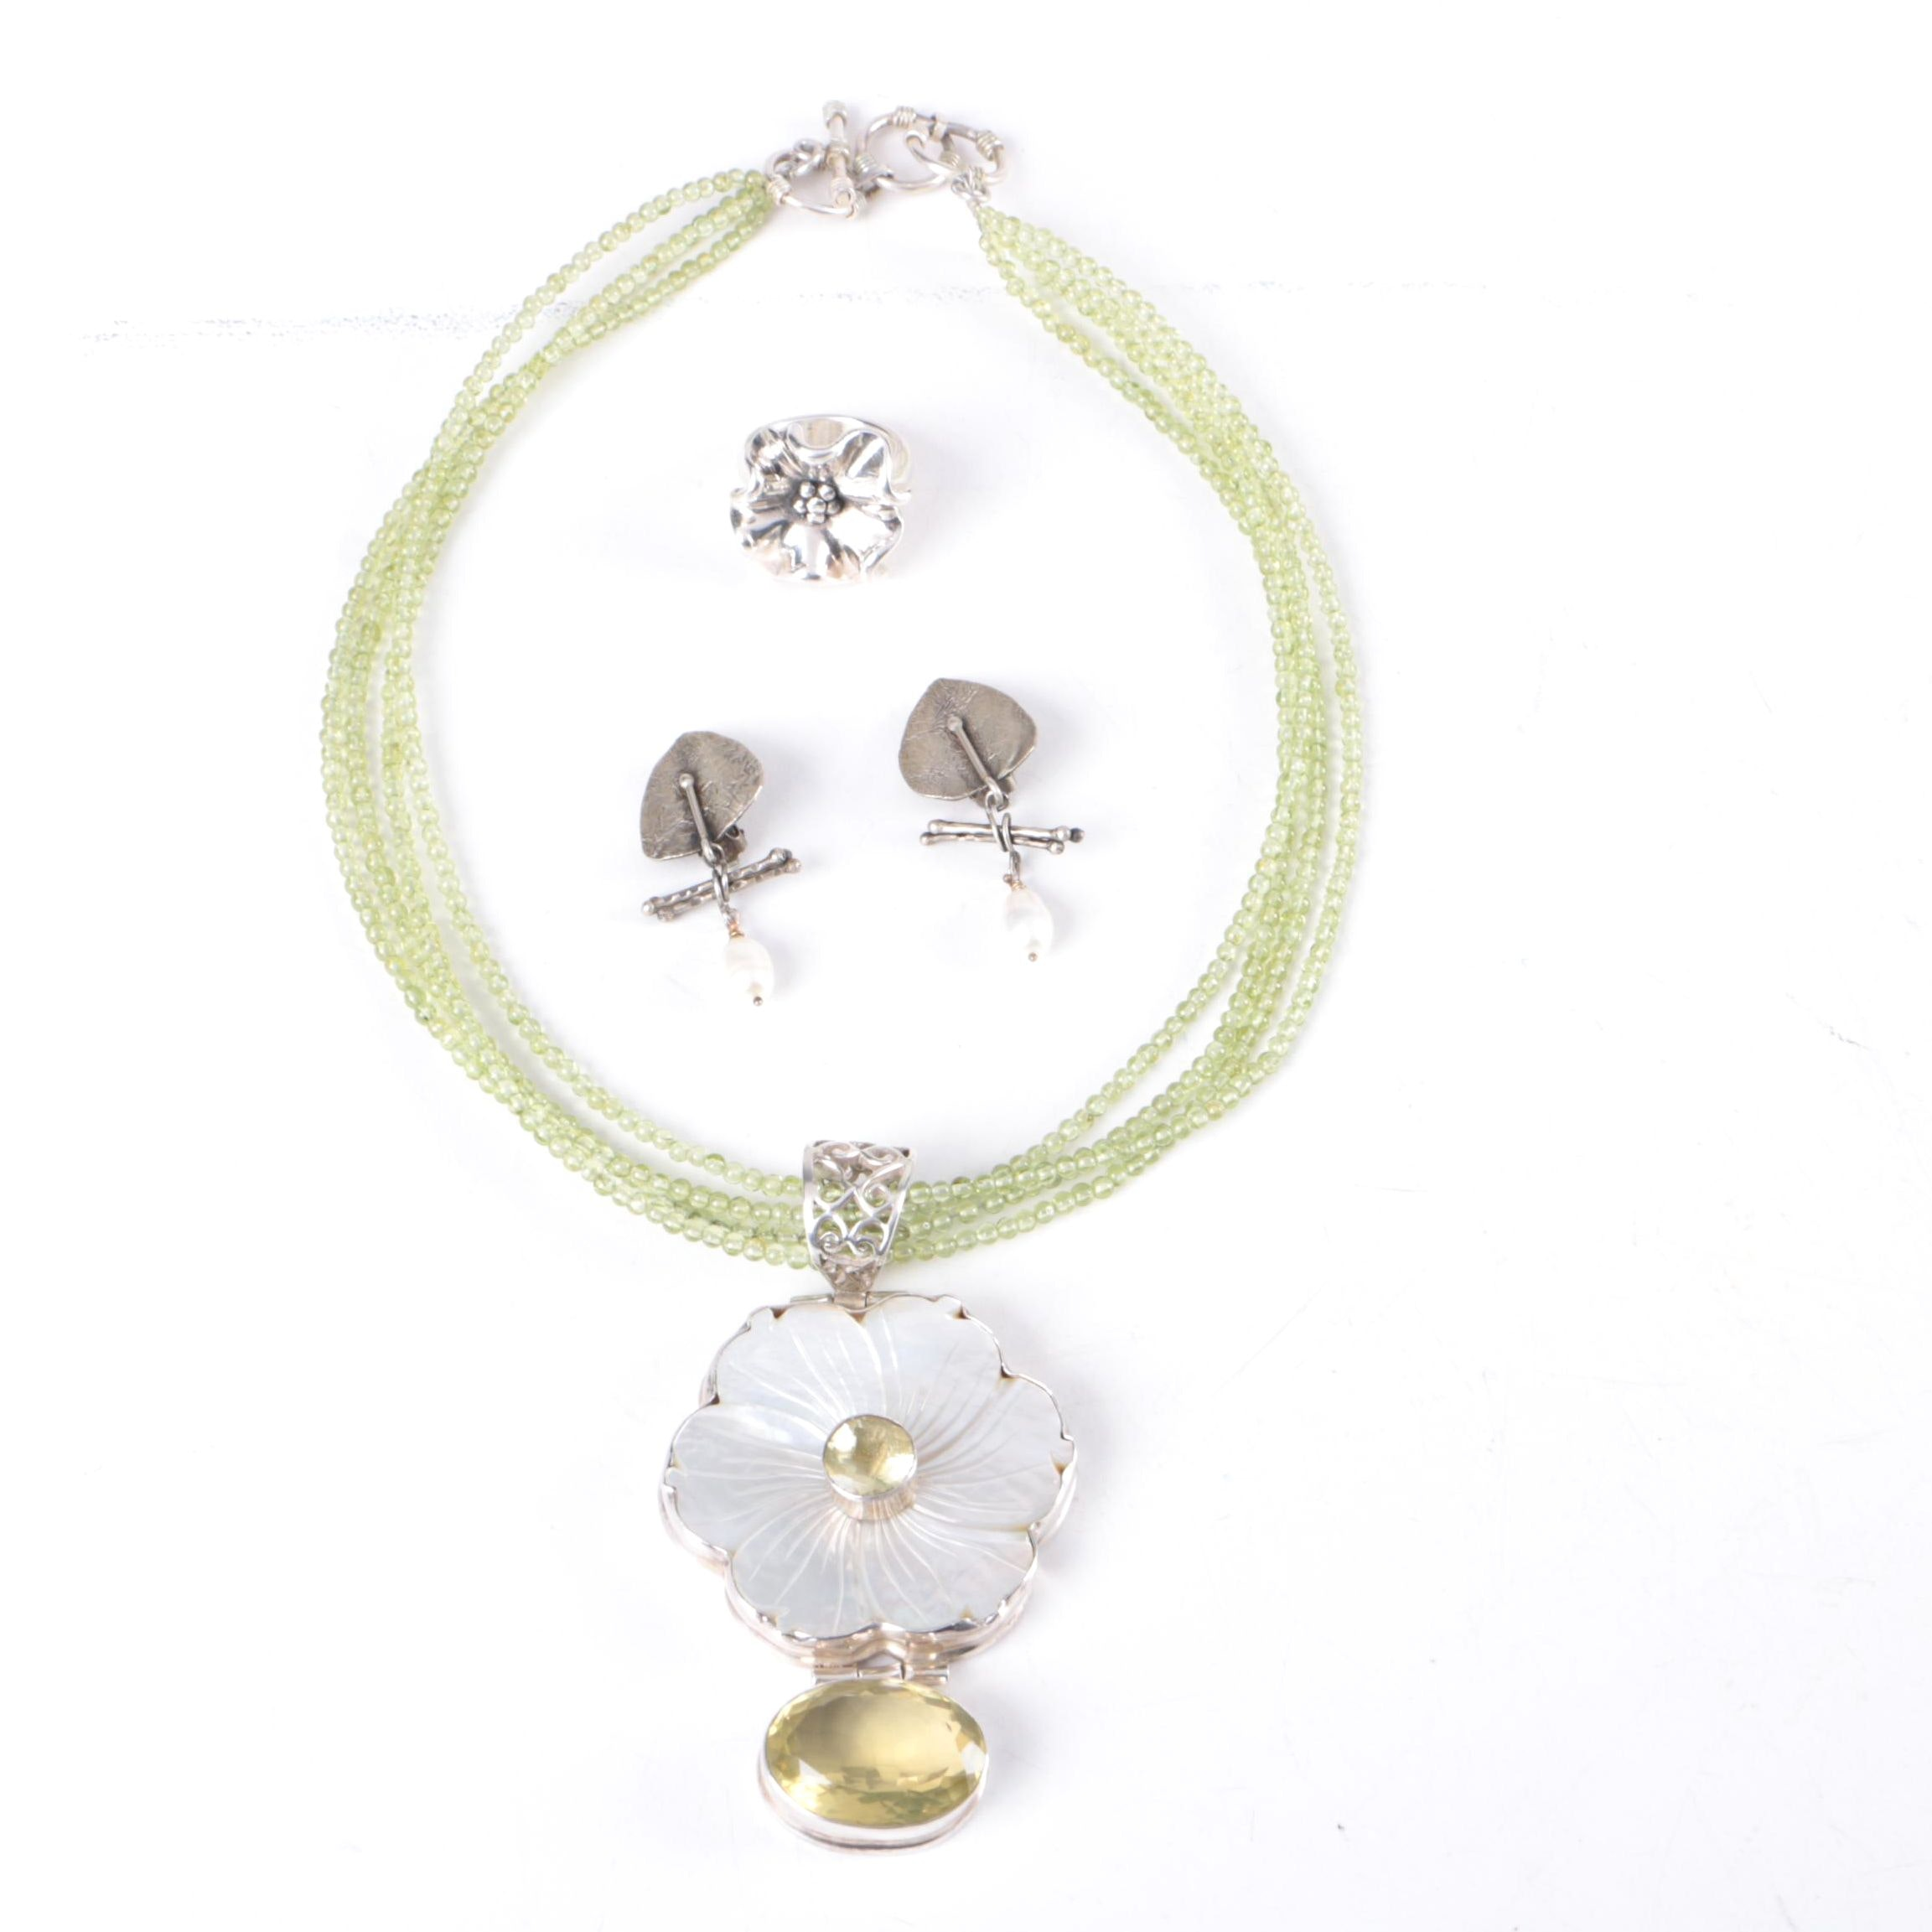 Sterling Silver Jewelry Featuring Lemon Quartz, Peridot, and Cultured Pearl